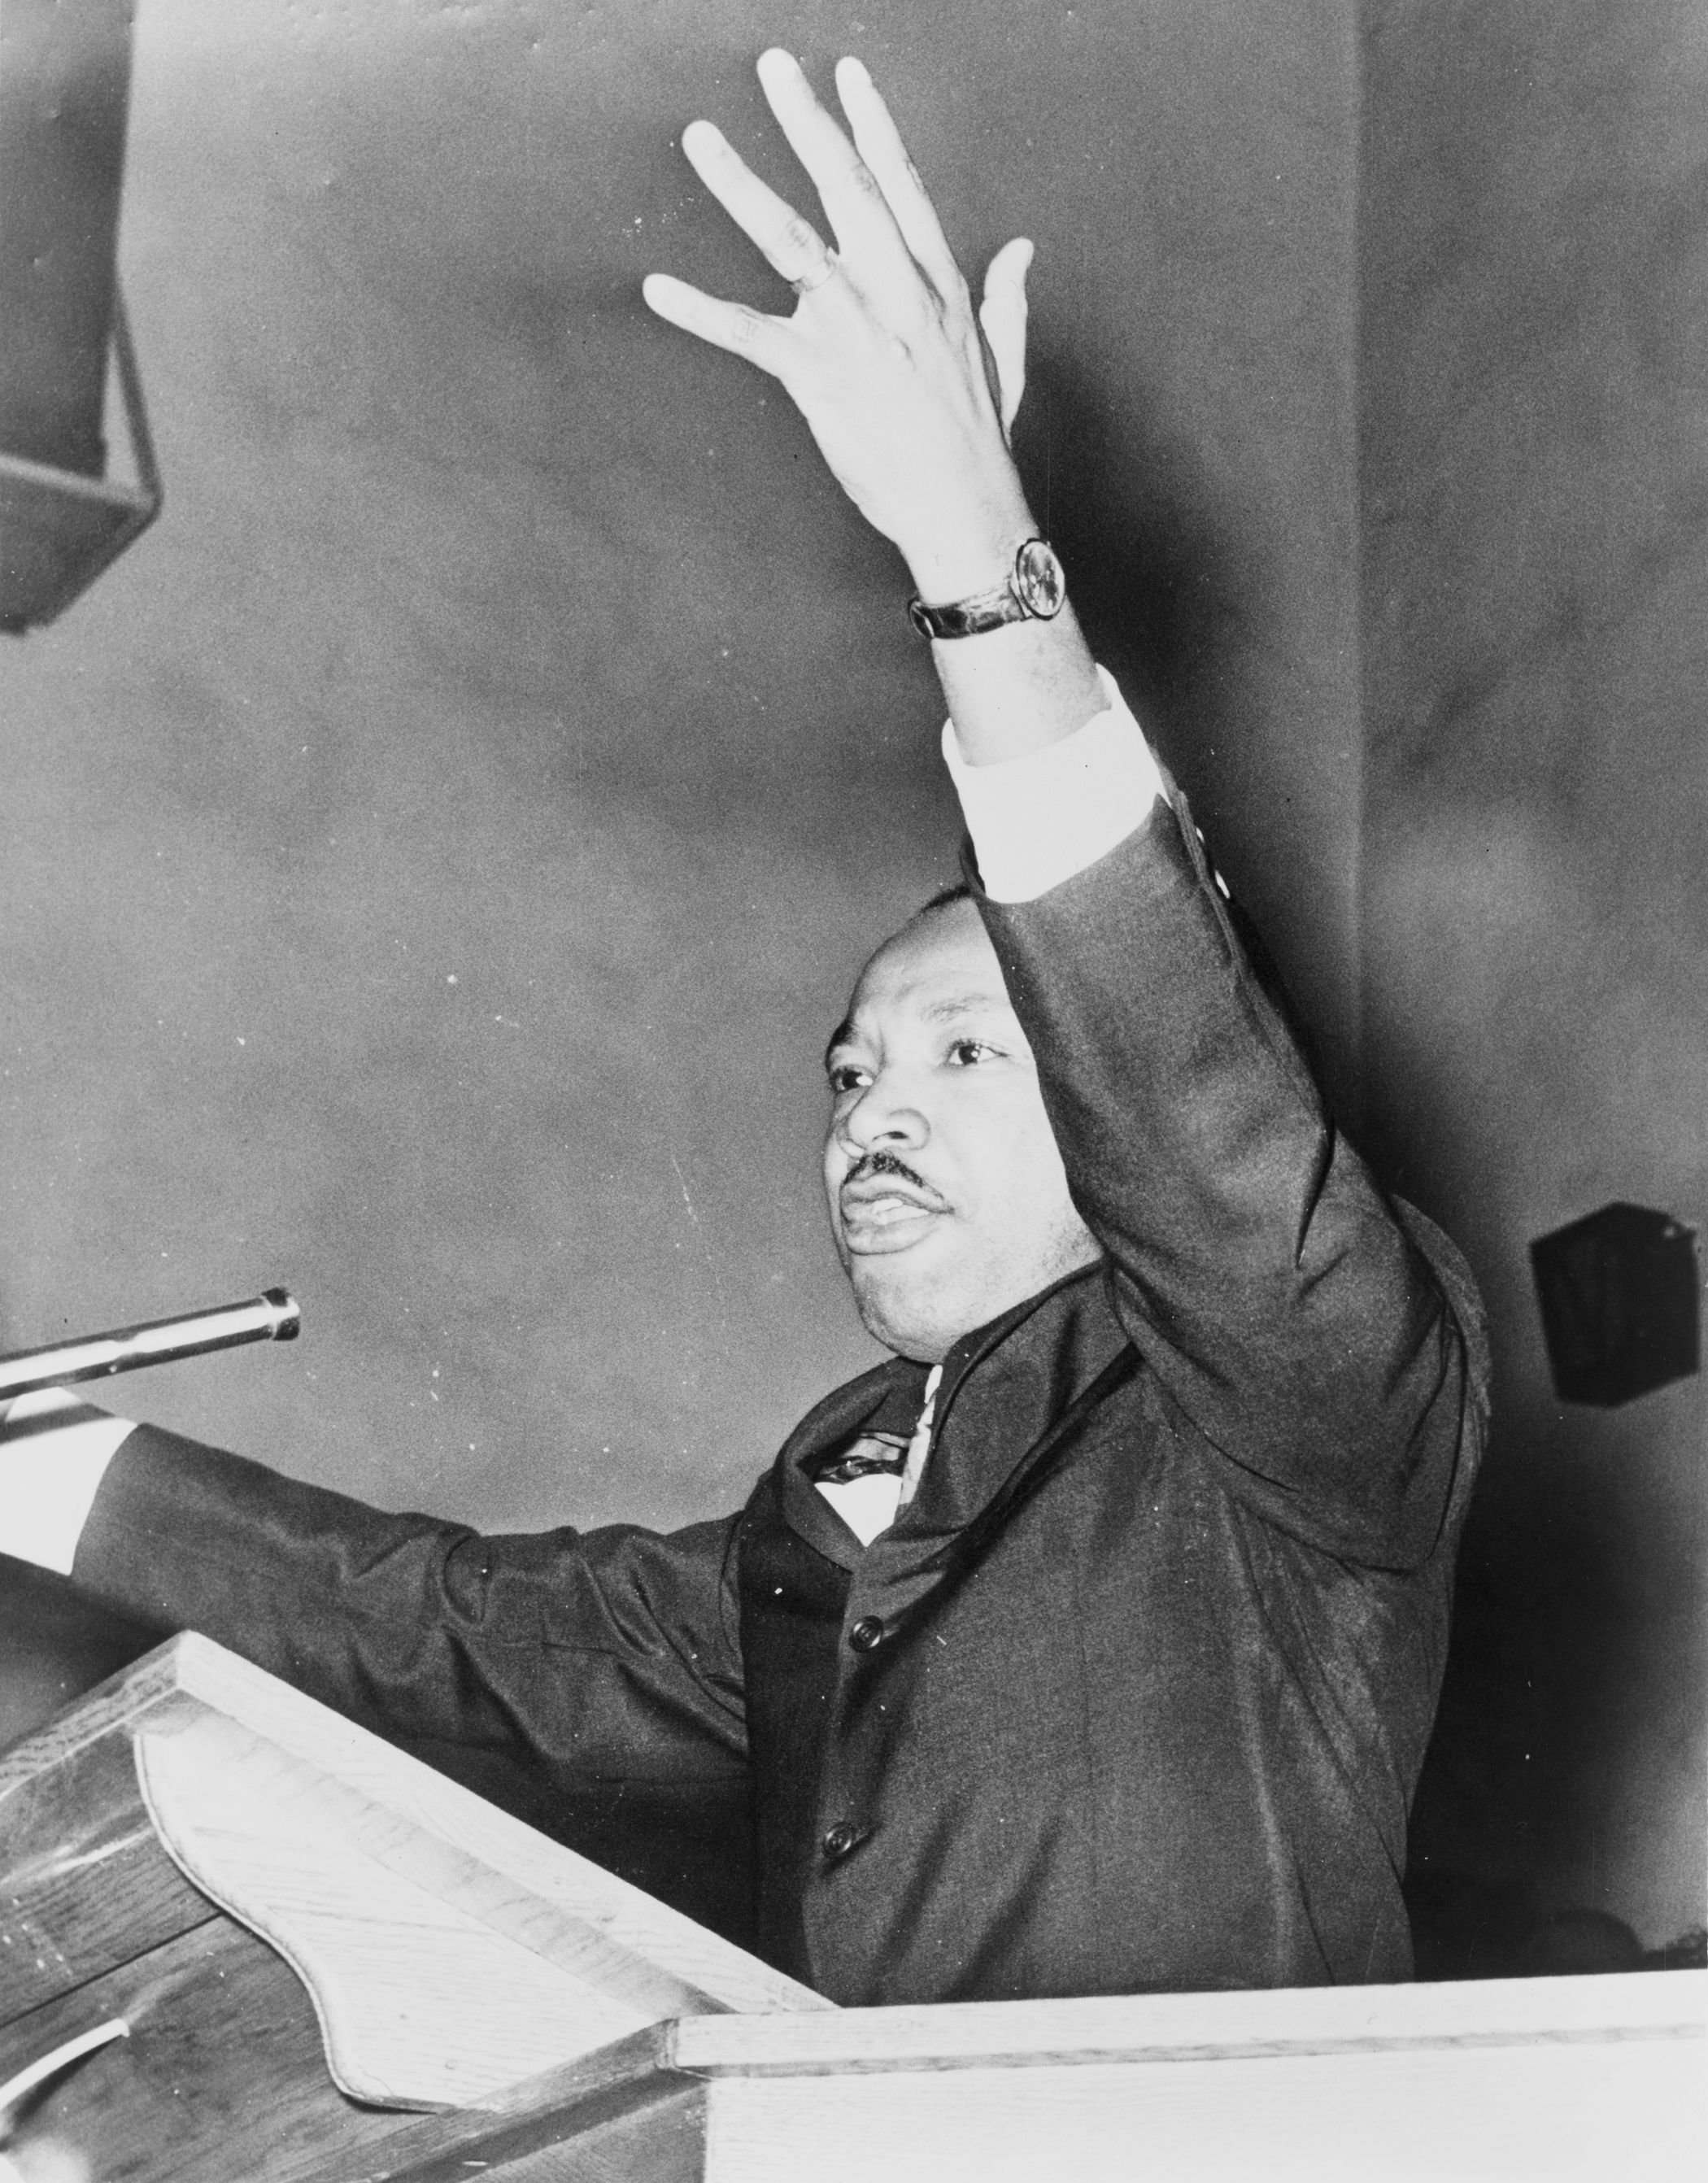 Martin Luther King Jr. allowed himself to dream big